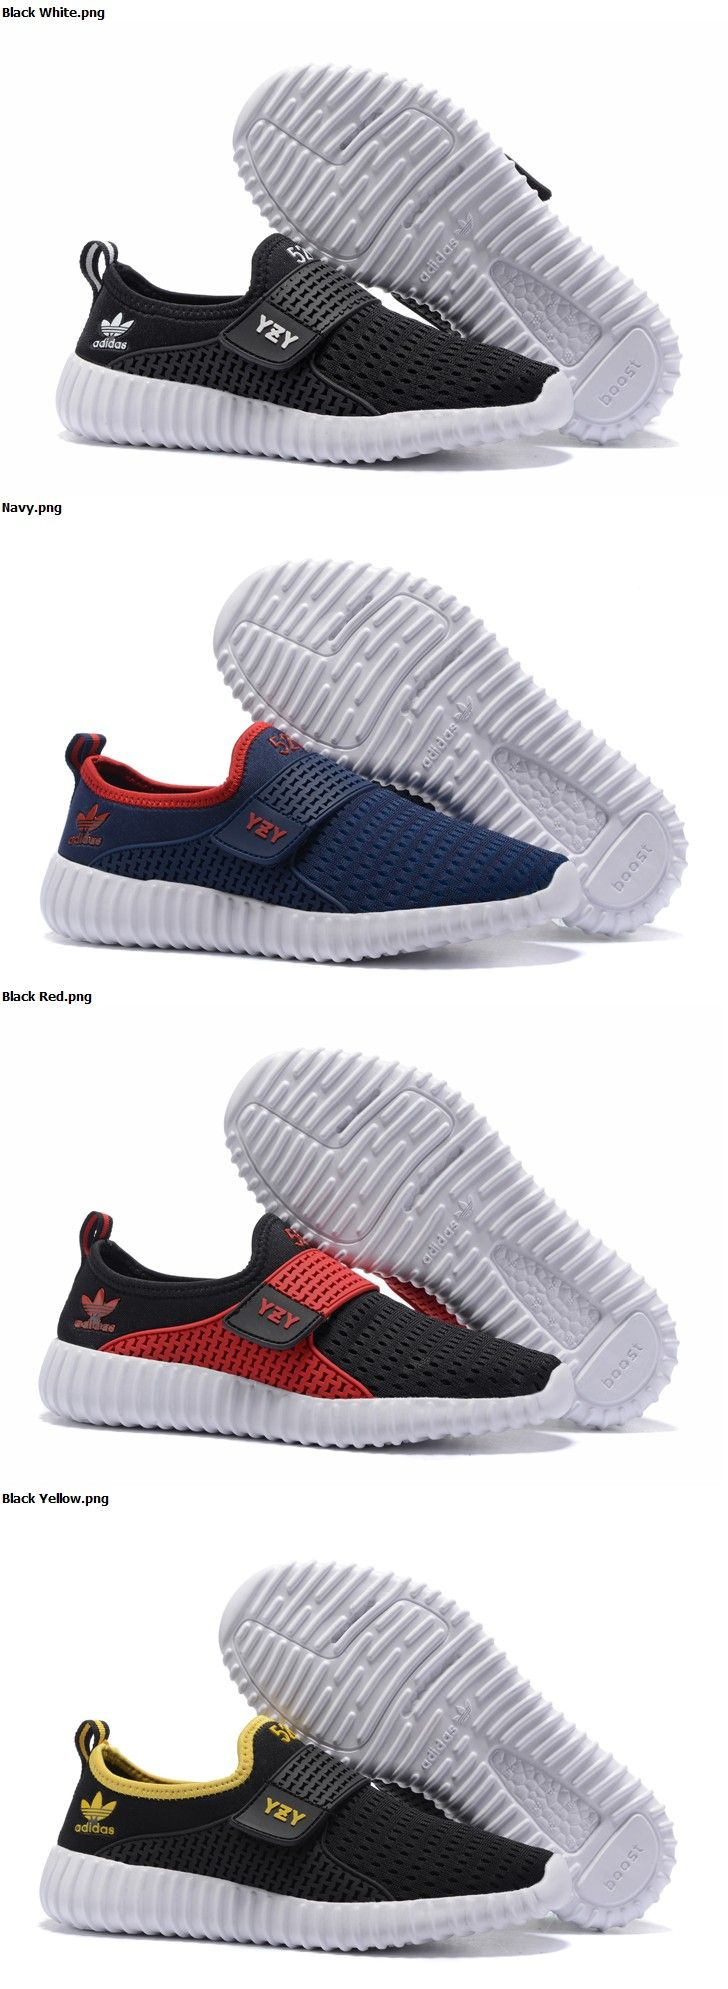 super popular 0bc0e 07698 Adidas Yeezy Boost 520 Men Free Shipping